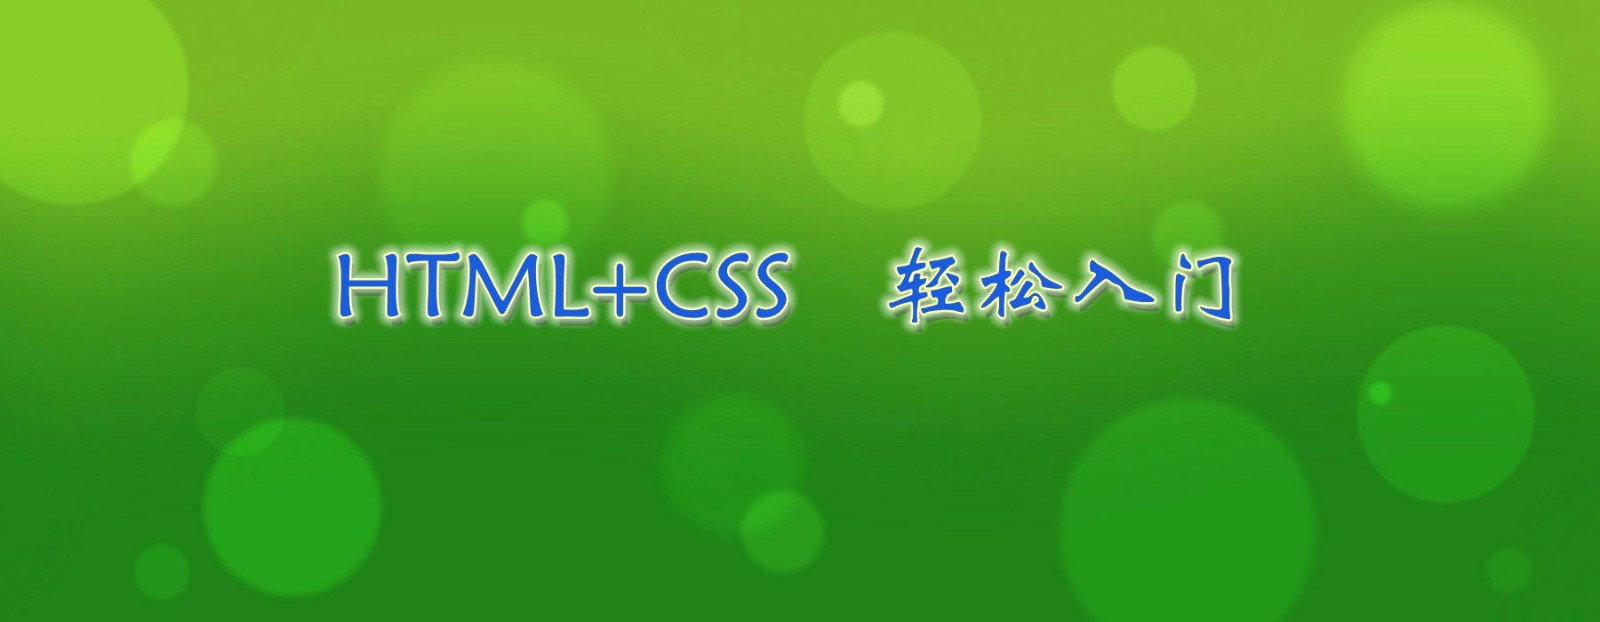 HTML+CSS  轻松入门